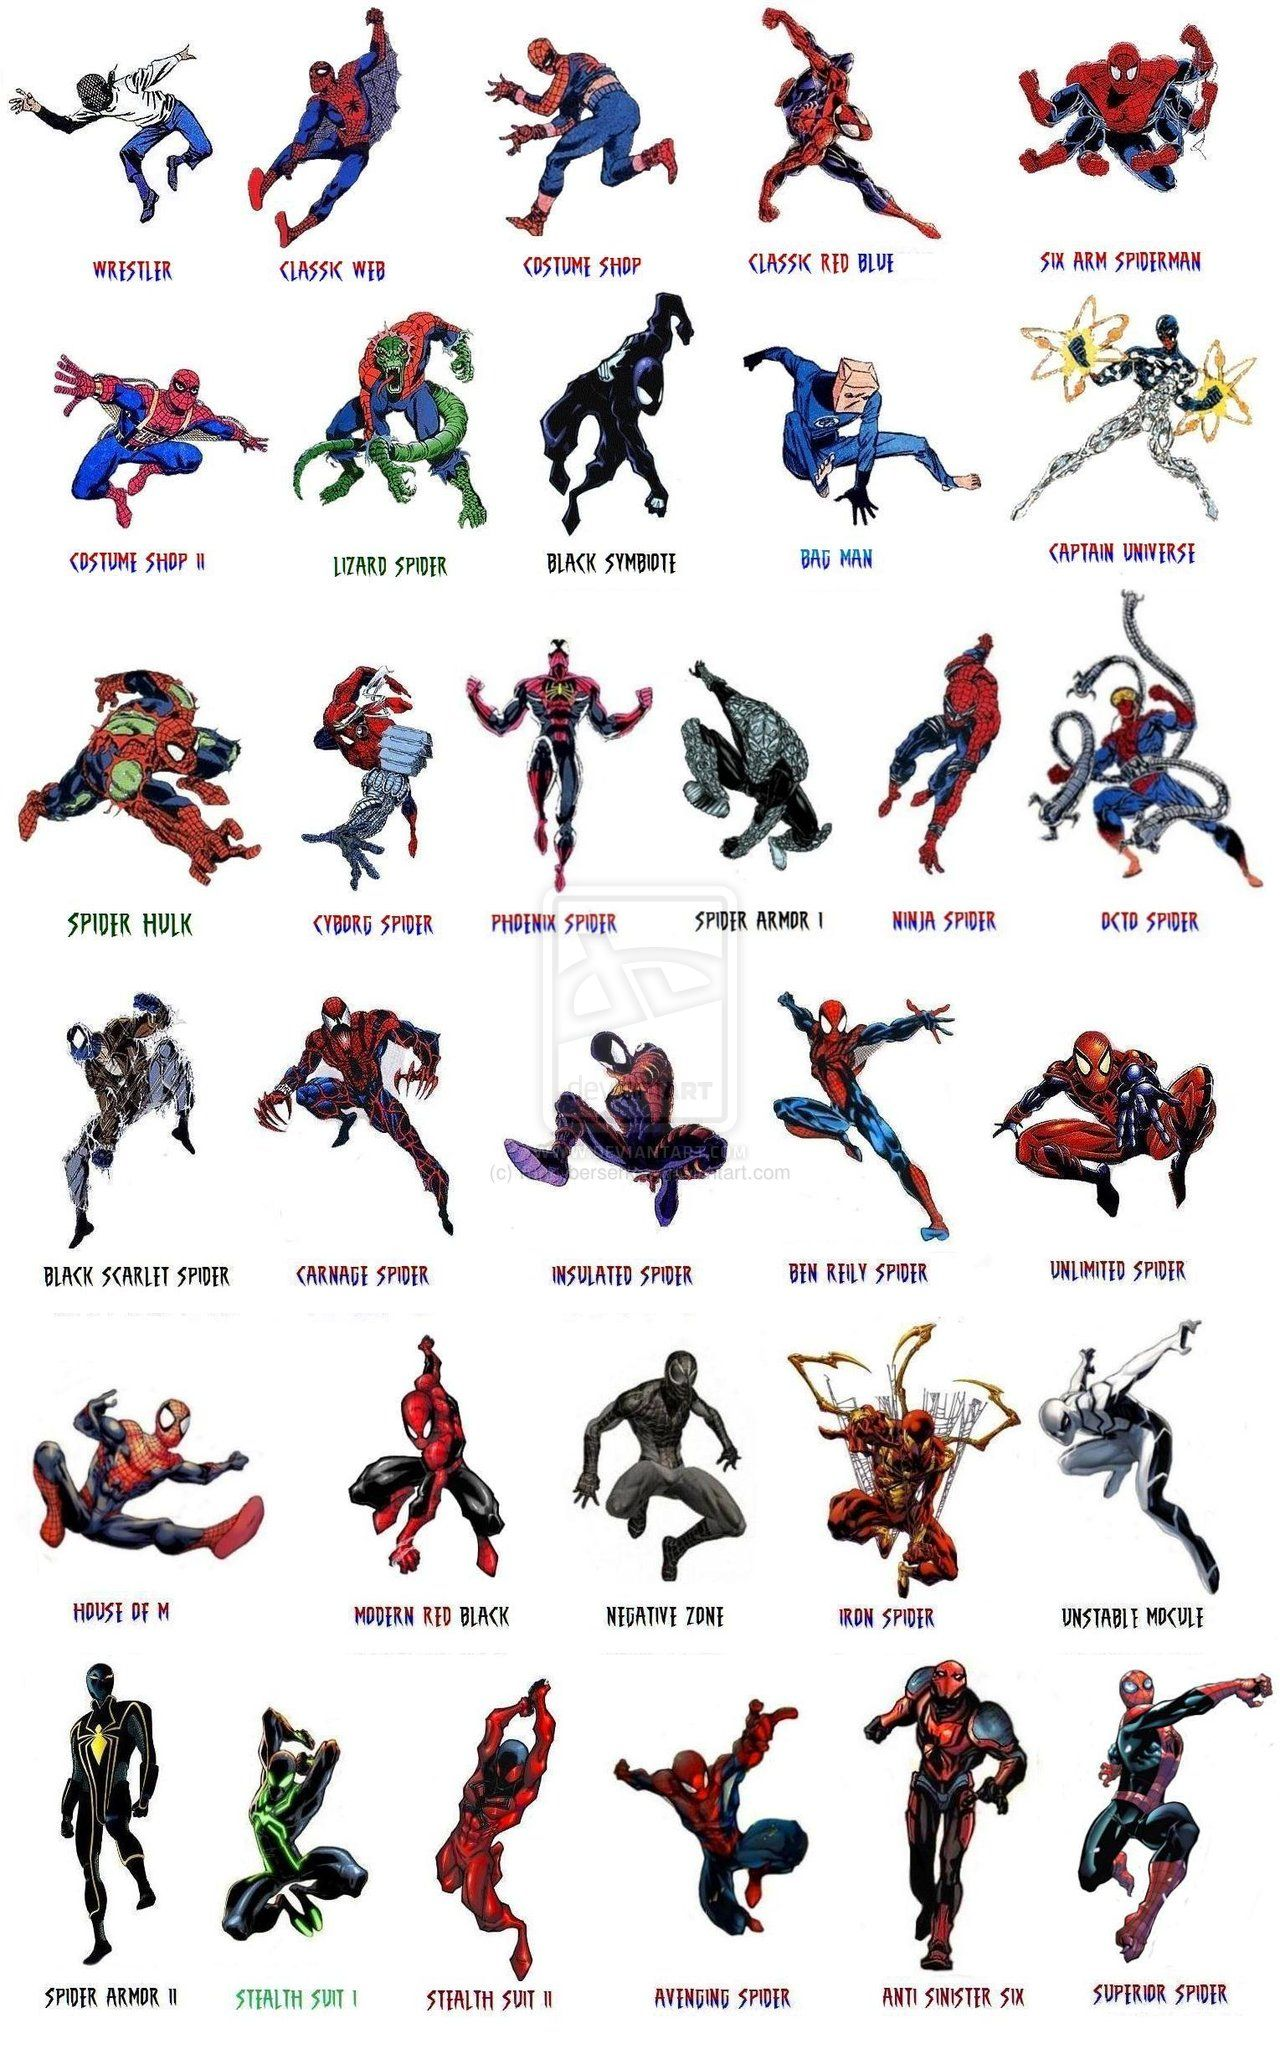 Image result for spider man suits list  sc 1 st  Pinterest & Image result for spider man suits list | Gatesu0027s Ideas | Pinterest ...